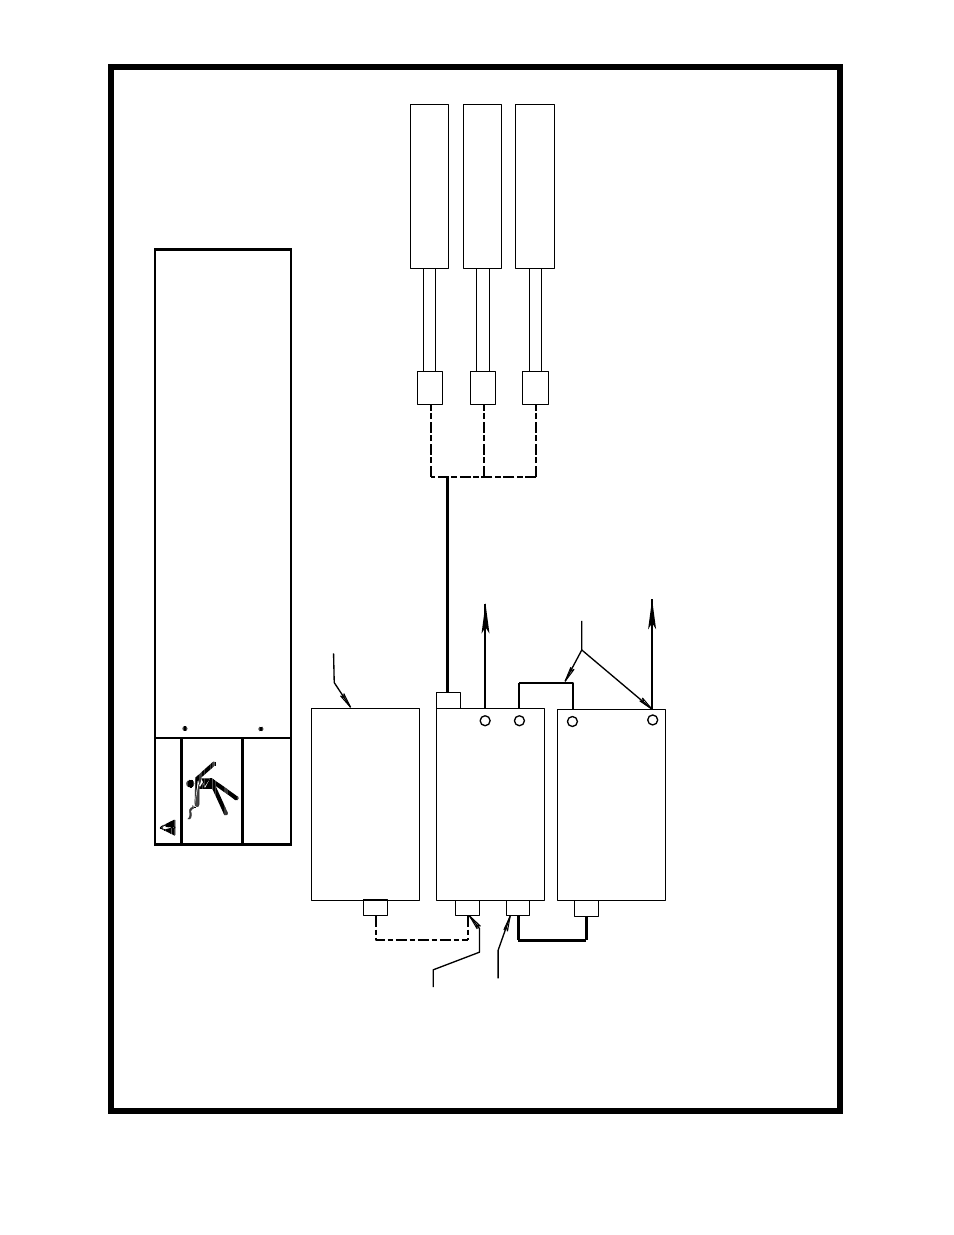 Lincoln Welder Starter Switch Wiring Diagram Sa 200 Parts K900 1 Dc Tig Connection Warning